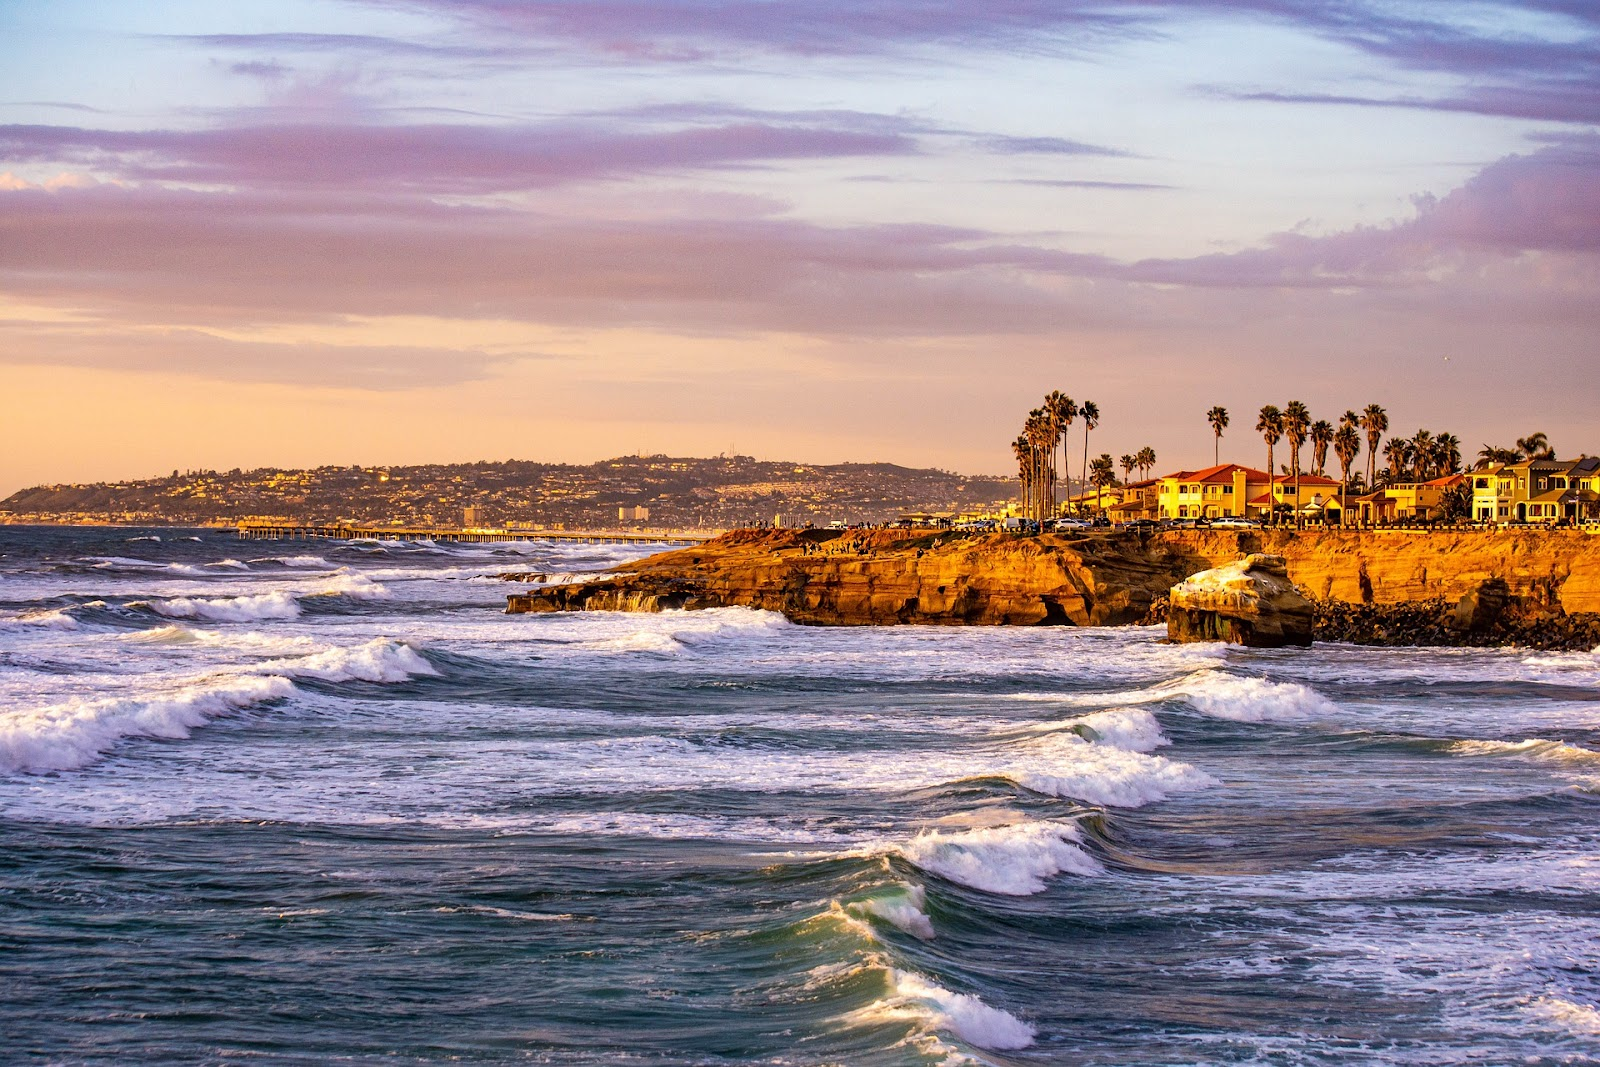 blue ocean waves coming to san diego shore with short cliff and bright buildings and palm trees during sunset in california